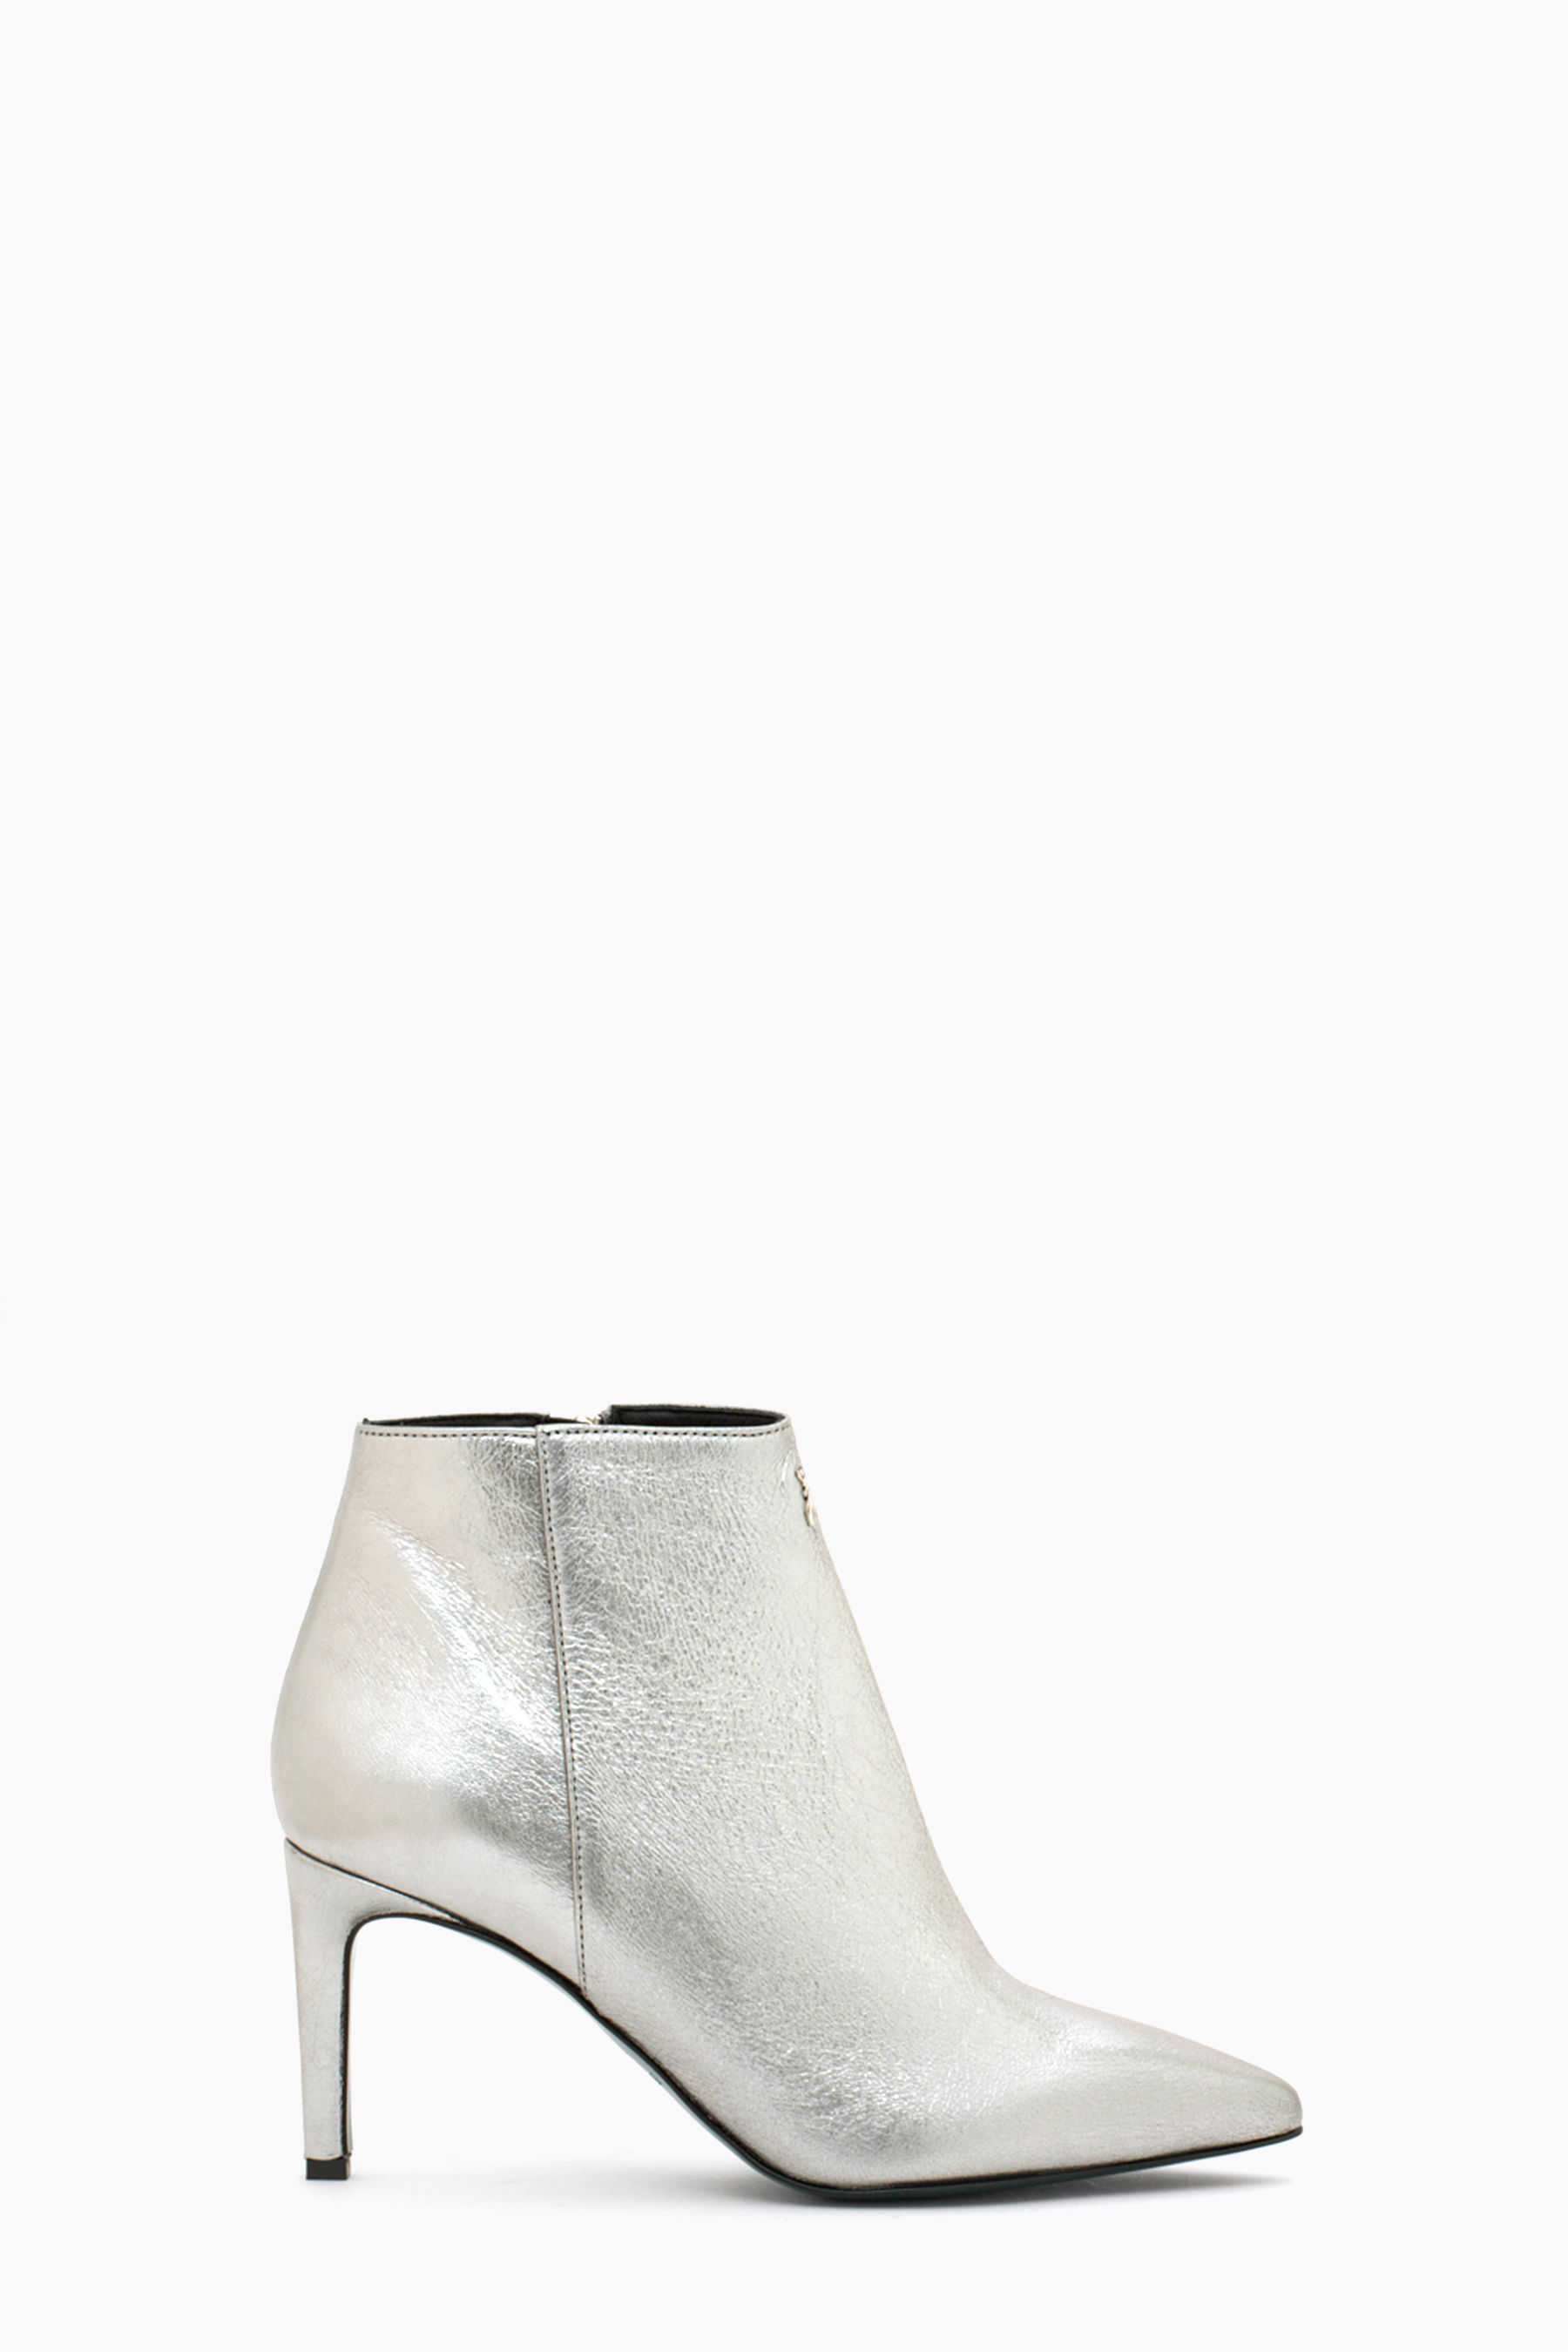 Metallic leather ankle boot